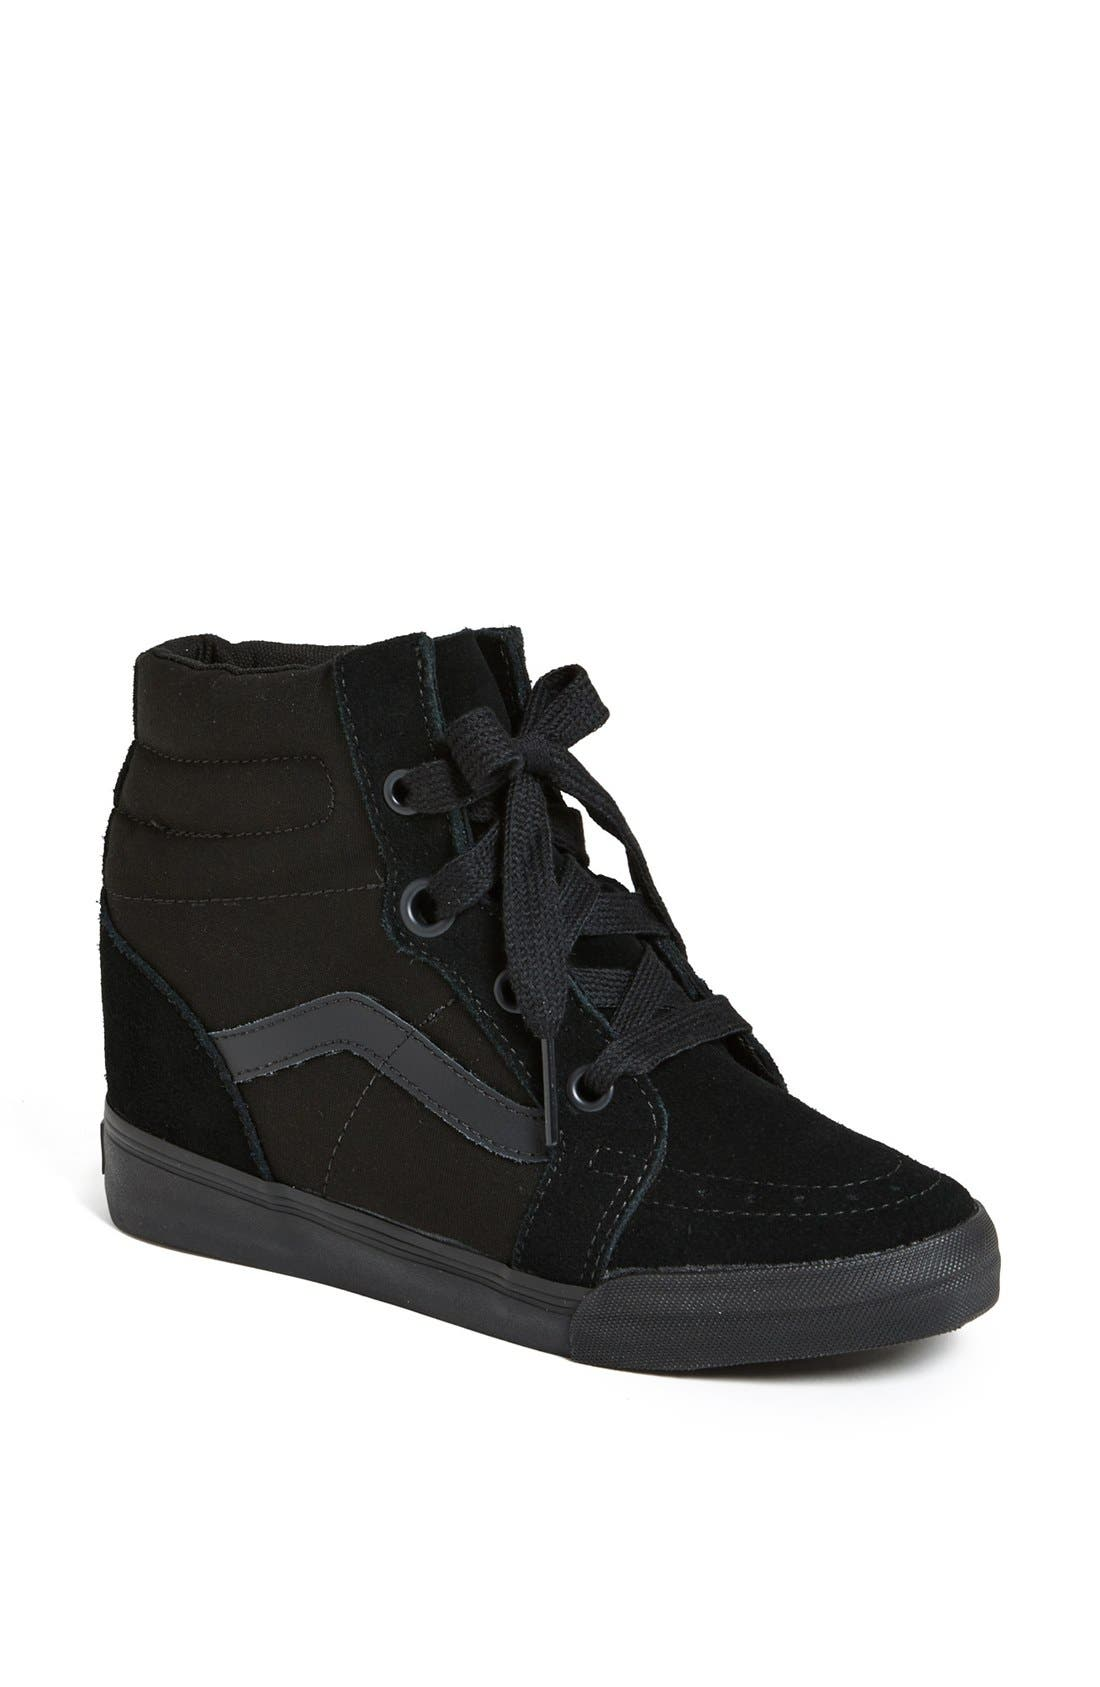 Alternate Image 1 Selected - Vans 'Sk8 Hi' Wedge Sneaker (Women)